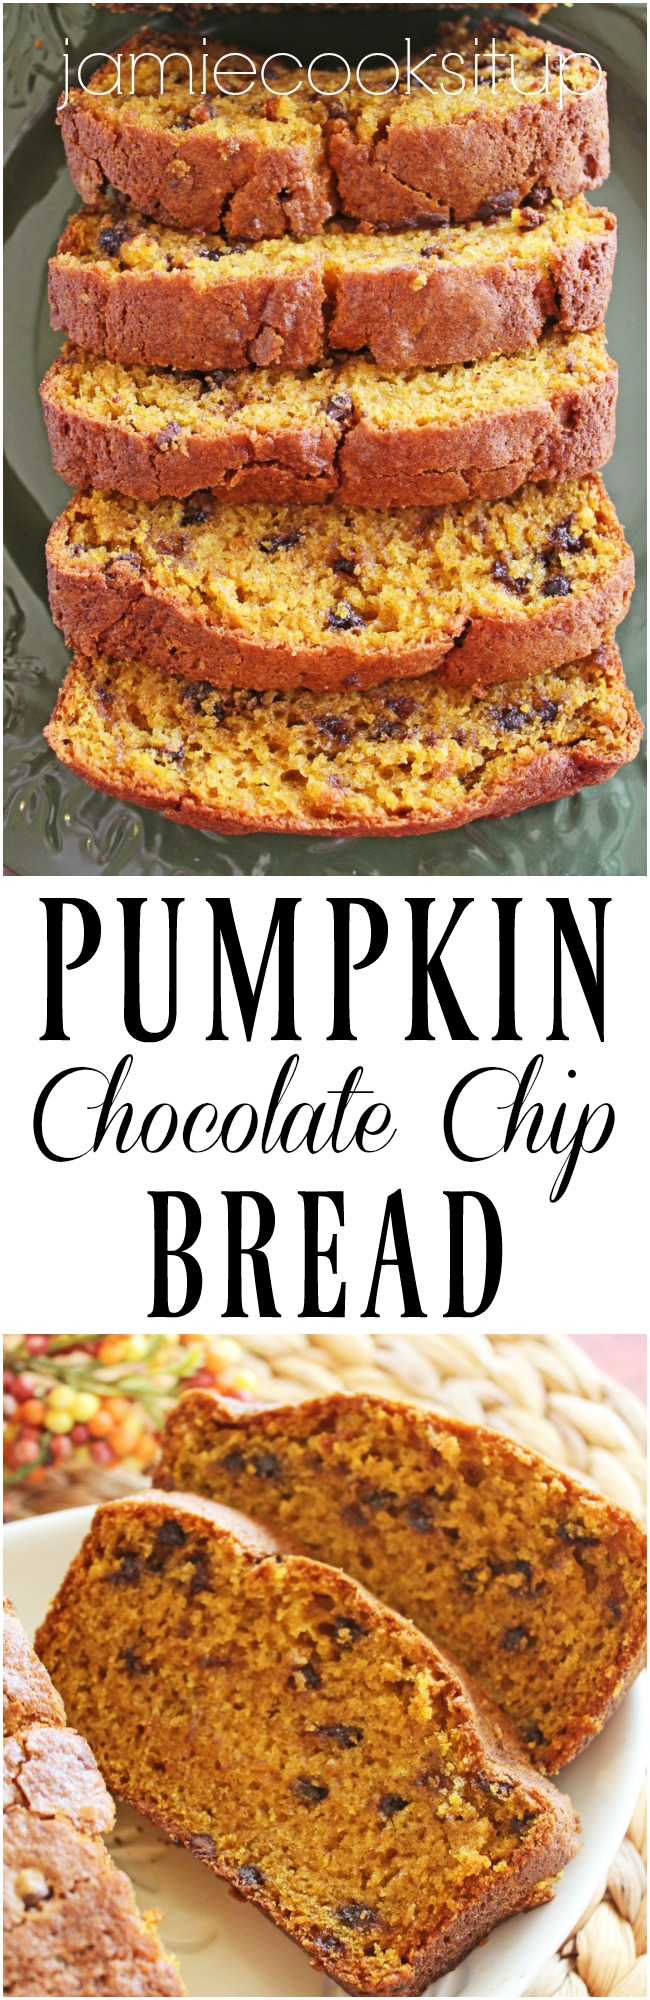 pumpkin-chocolate-chip-bread-from-jamie-cooks-it-up